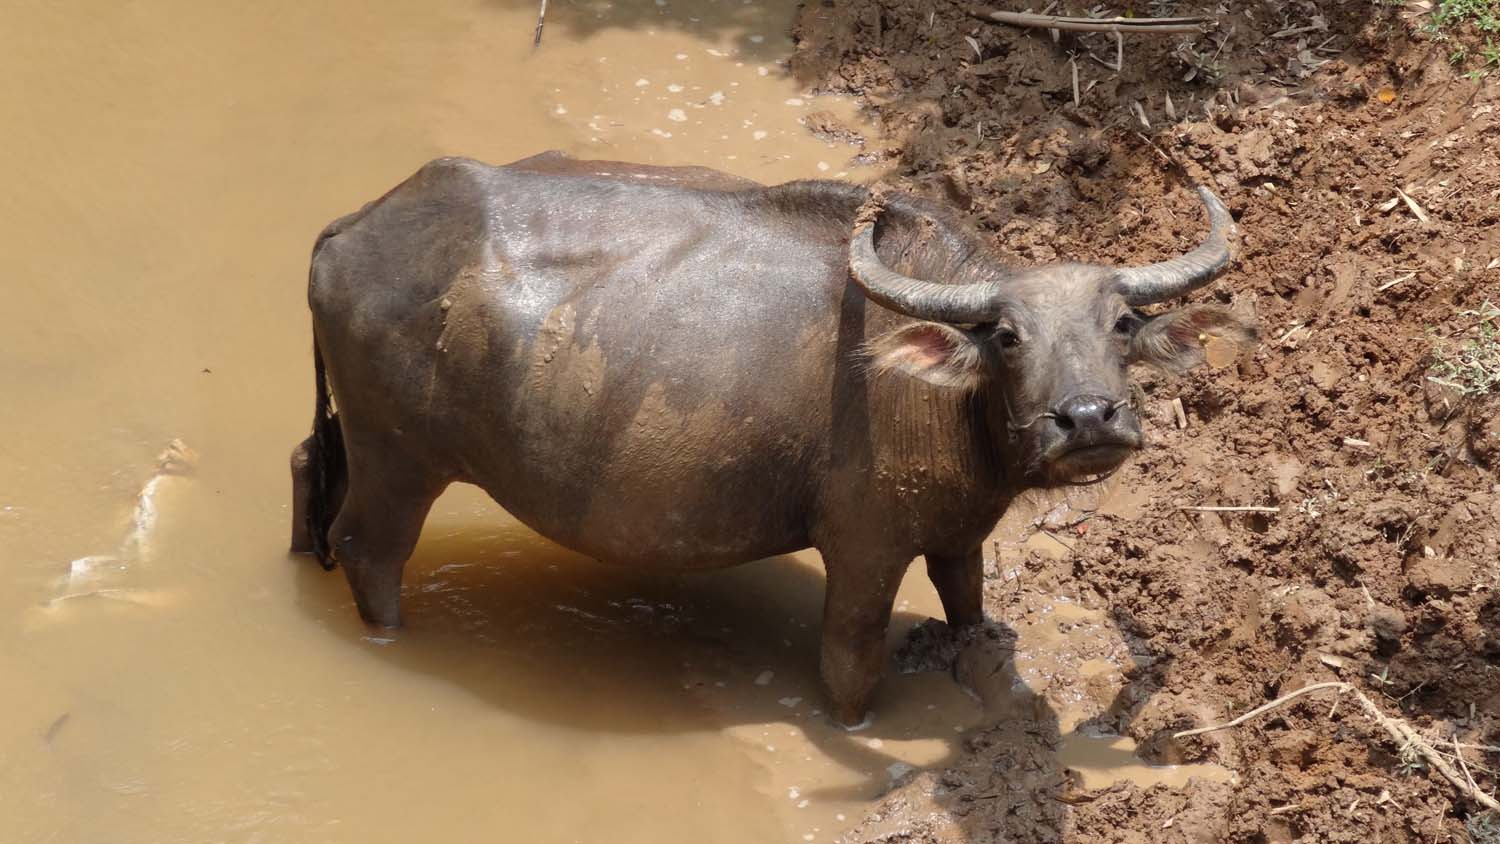 a water buffalo enjoying a mud bath